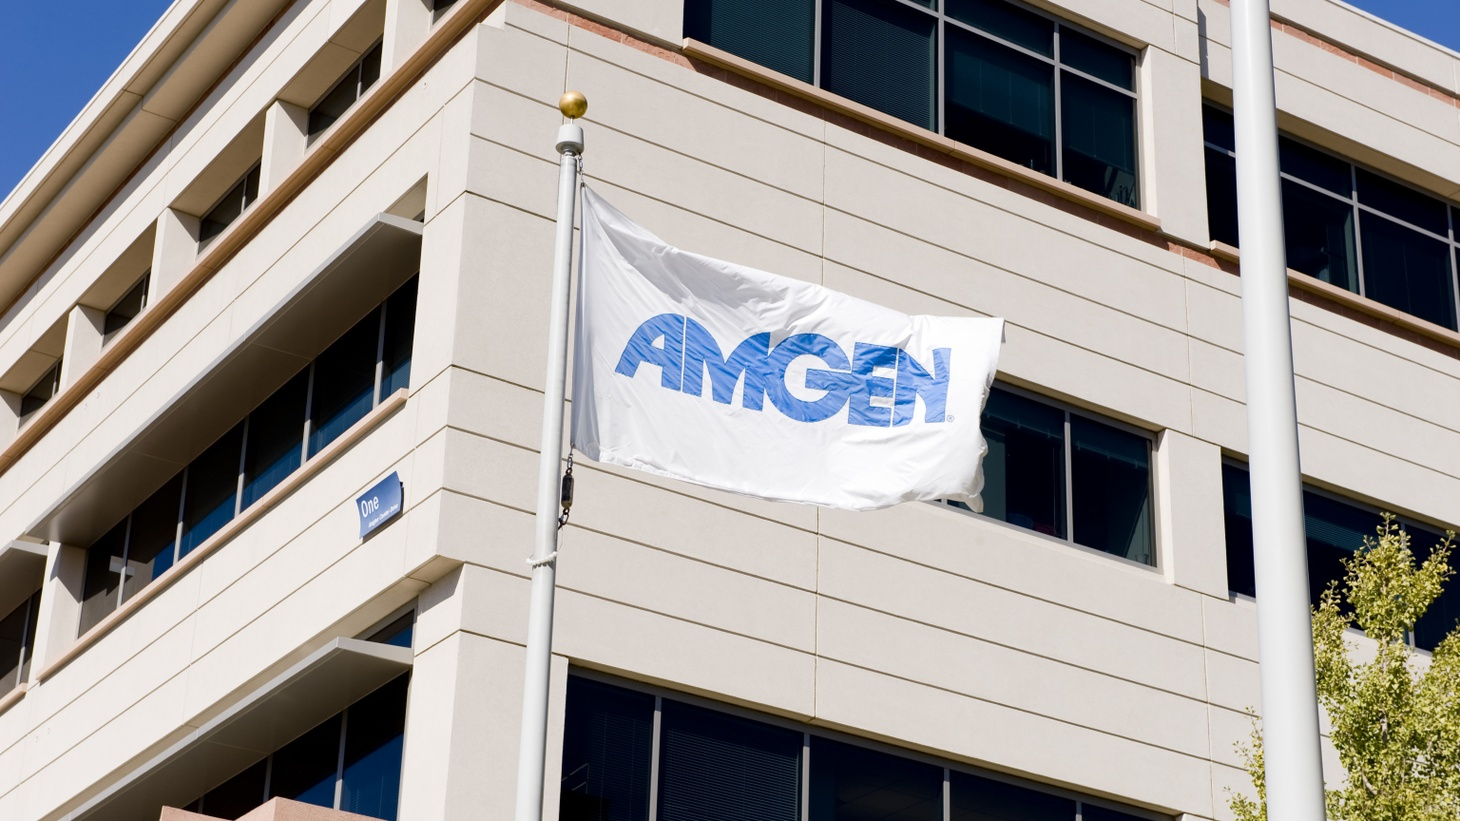 Amgen headquarters is based in Thousand Oaks, CA. To find a COVID-19 treatment, staff there are working with antibody-producing B cells from people who've recovered from the virus, says Dr. David Reese.